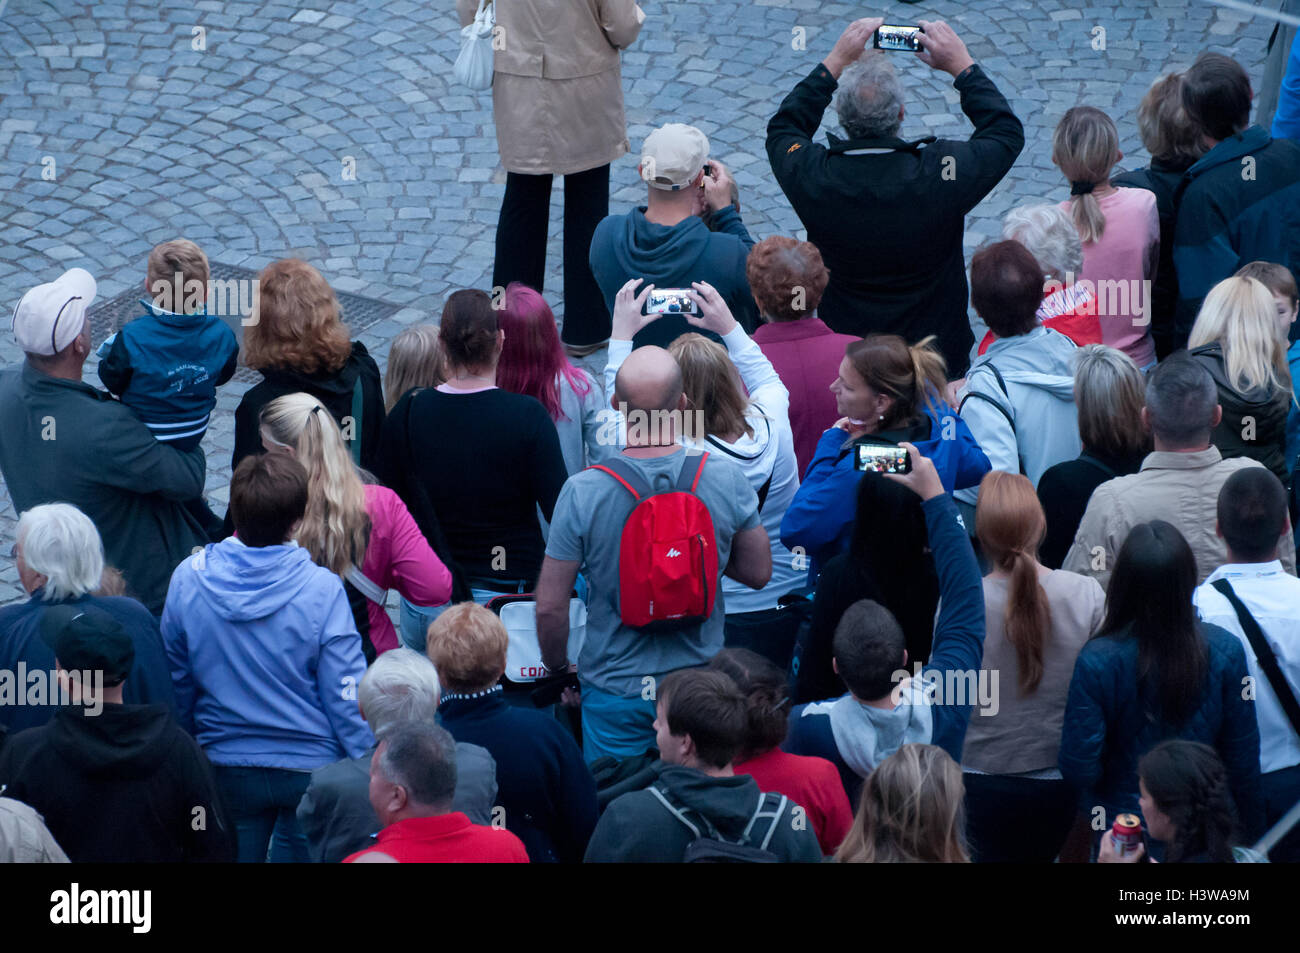 crowd of people, view from above - Stock Image